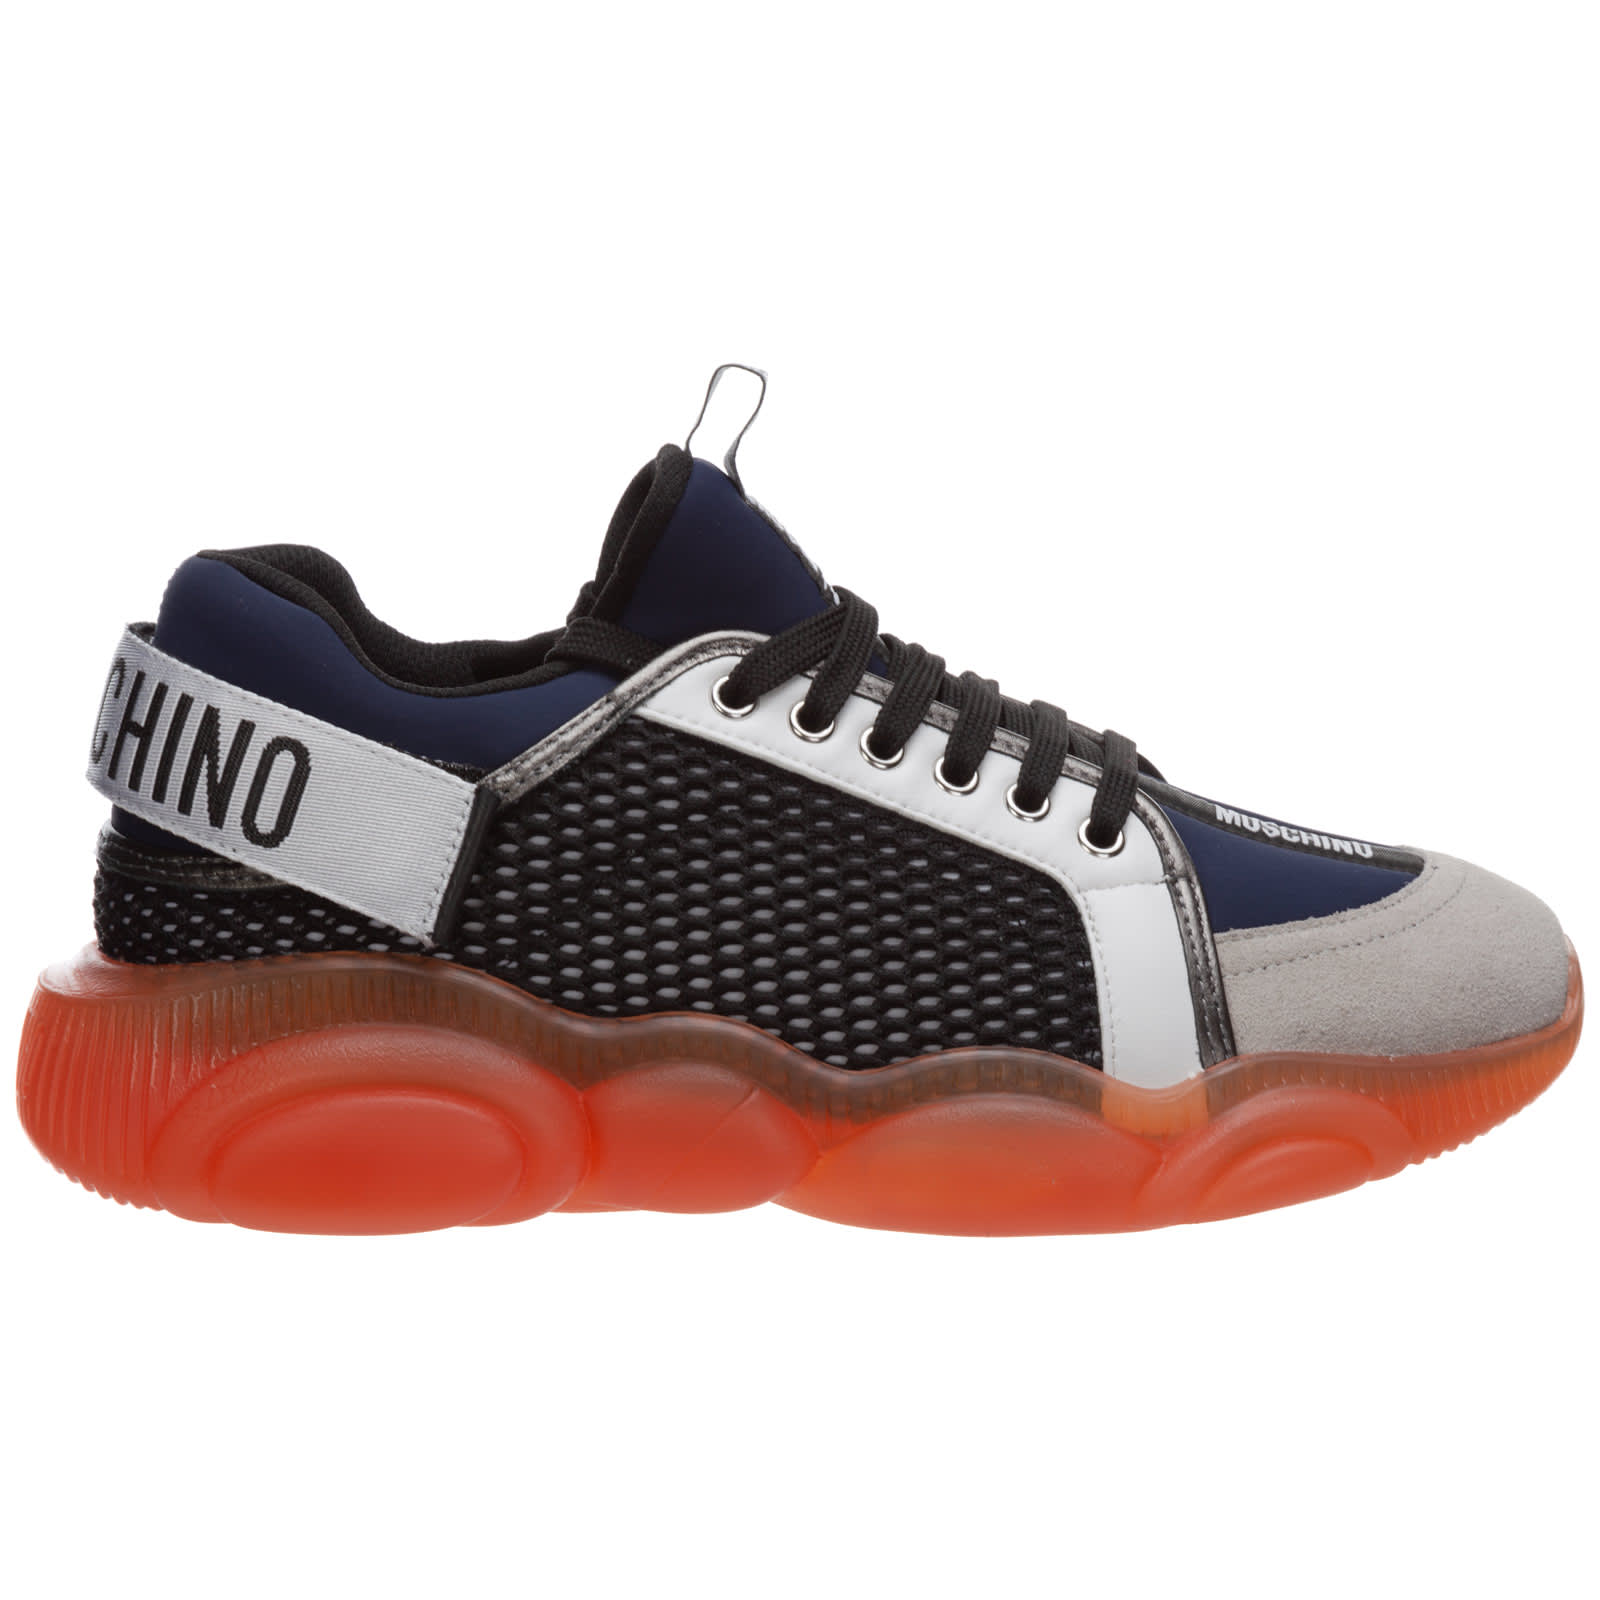 Moschino Orso Sneakers